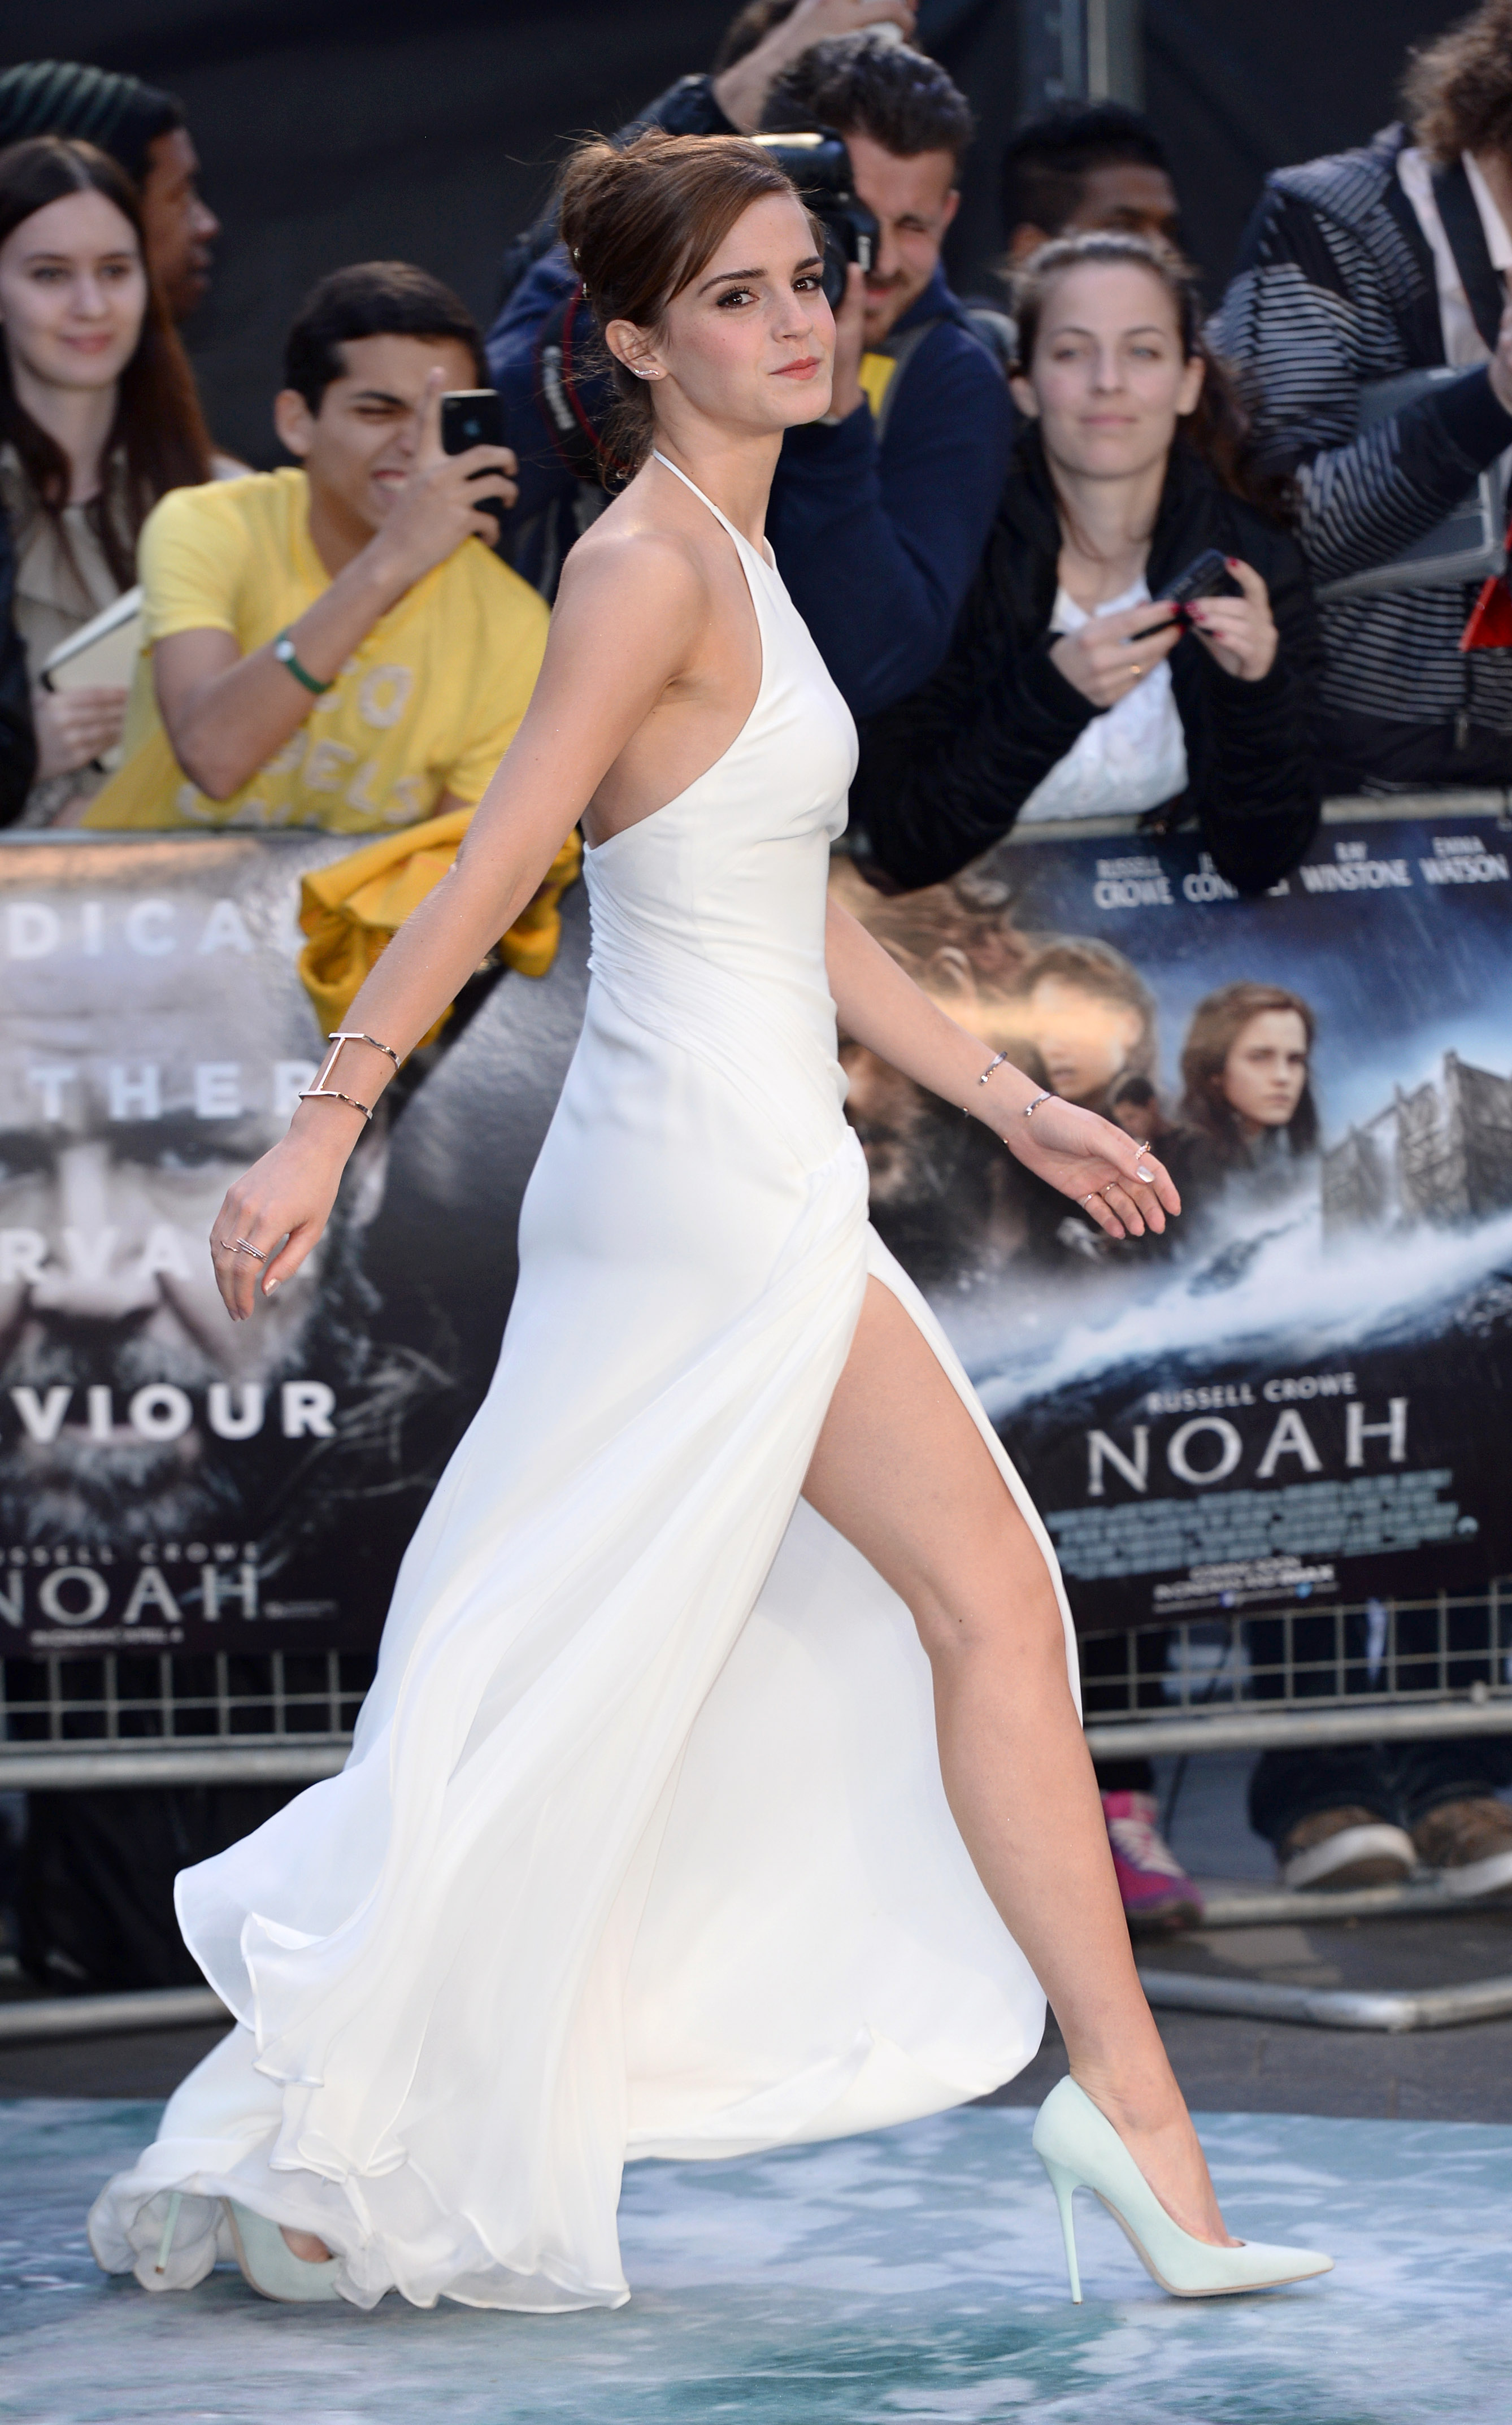 Emma Watson attends the UK premiere of  Noah  held at the Odeon Leicester Square on March 31, 2014 in London, England.  (Karwai Tang--WireImage)